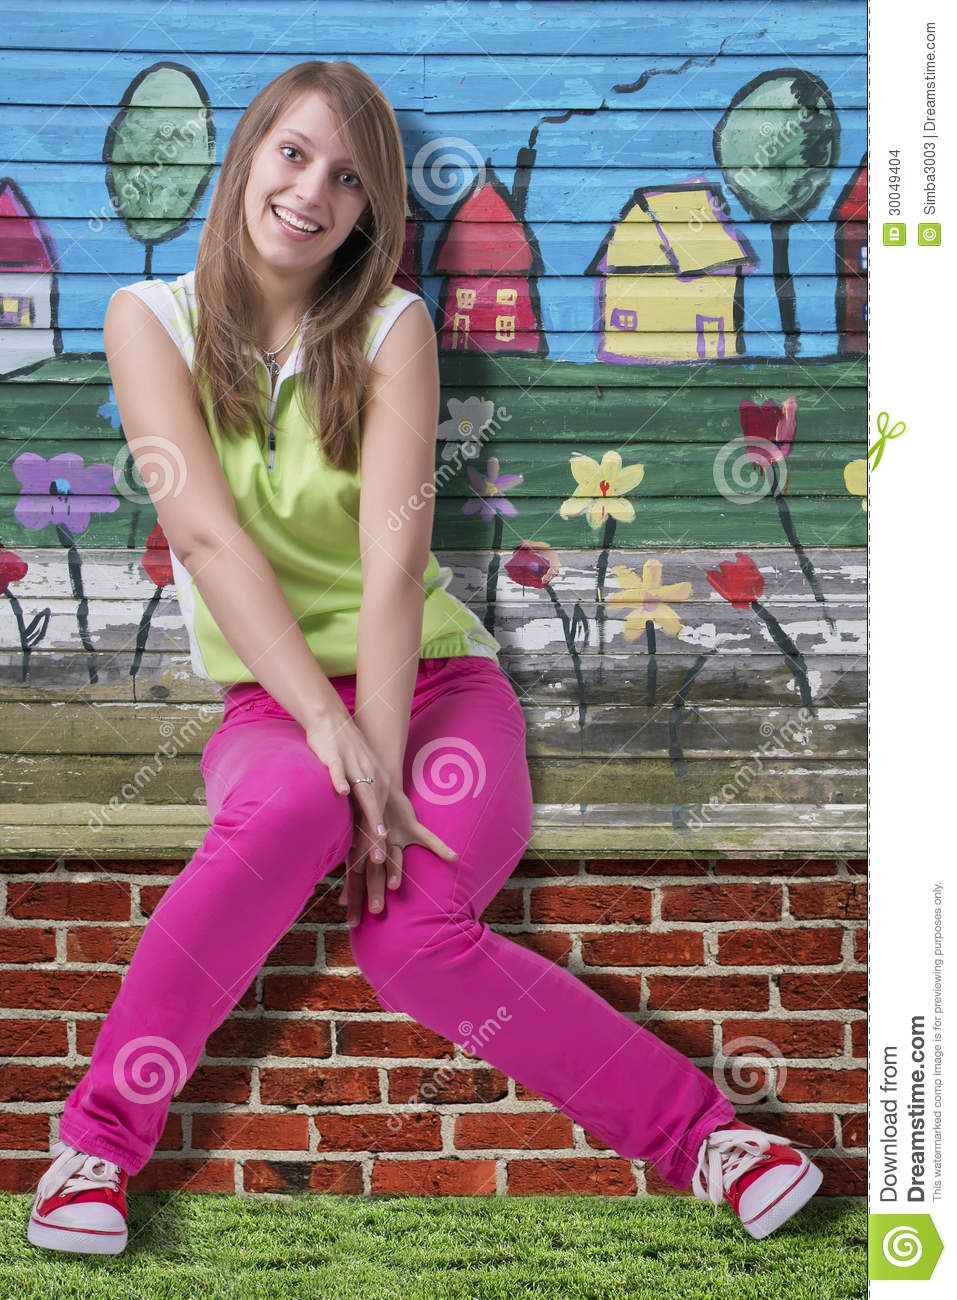 Colorful Teen Stock Image Image Of Lipstick Portrait: Springtime Happy Smiling Girl Over Colorful Wall Stock